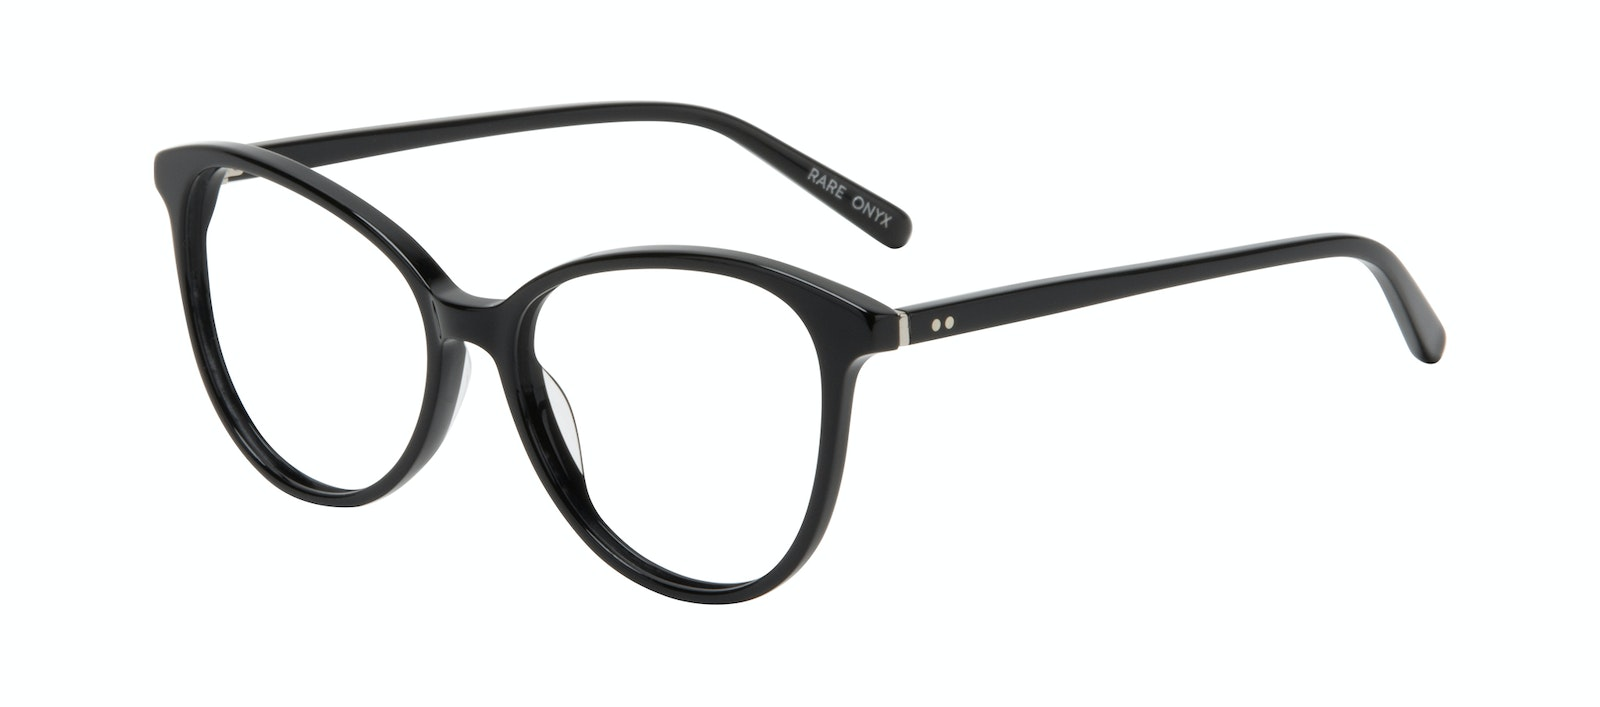 Affordable Fashion Glasses Cat Eye Eyeglasses Women Rare Onyx Tilt